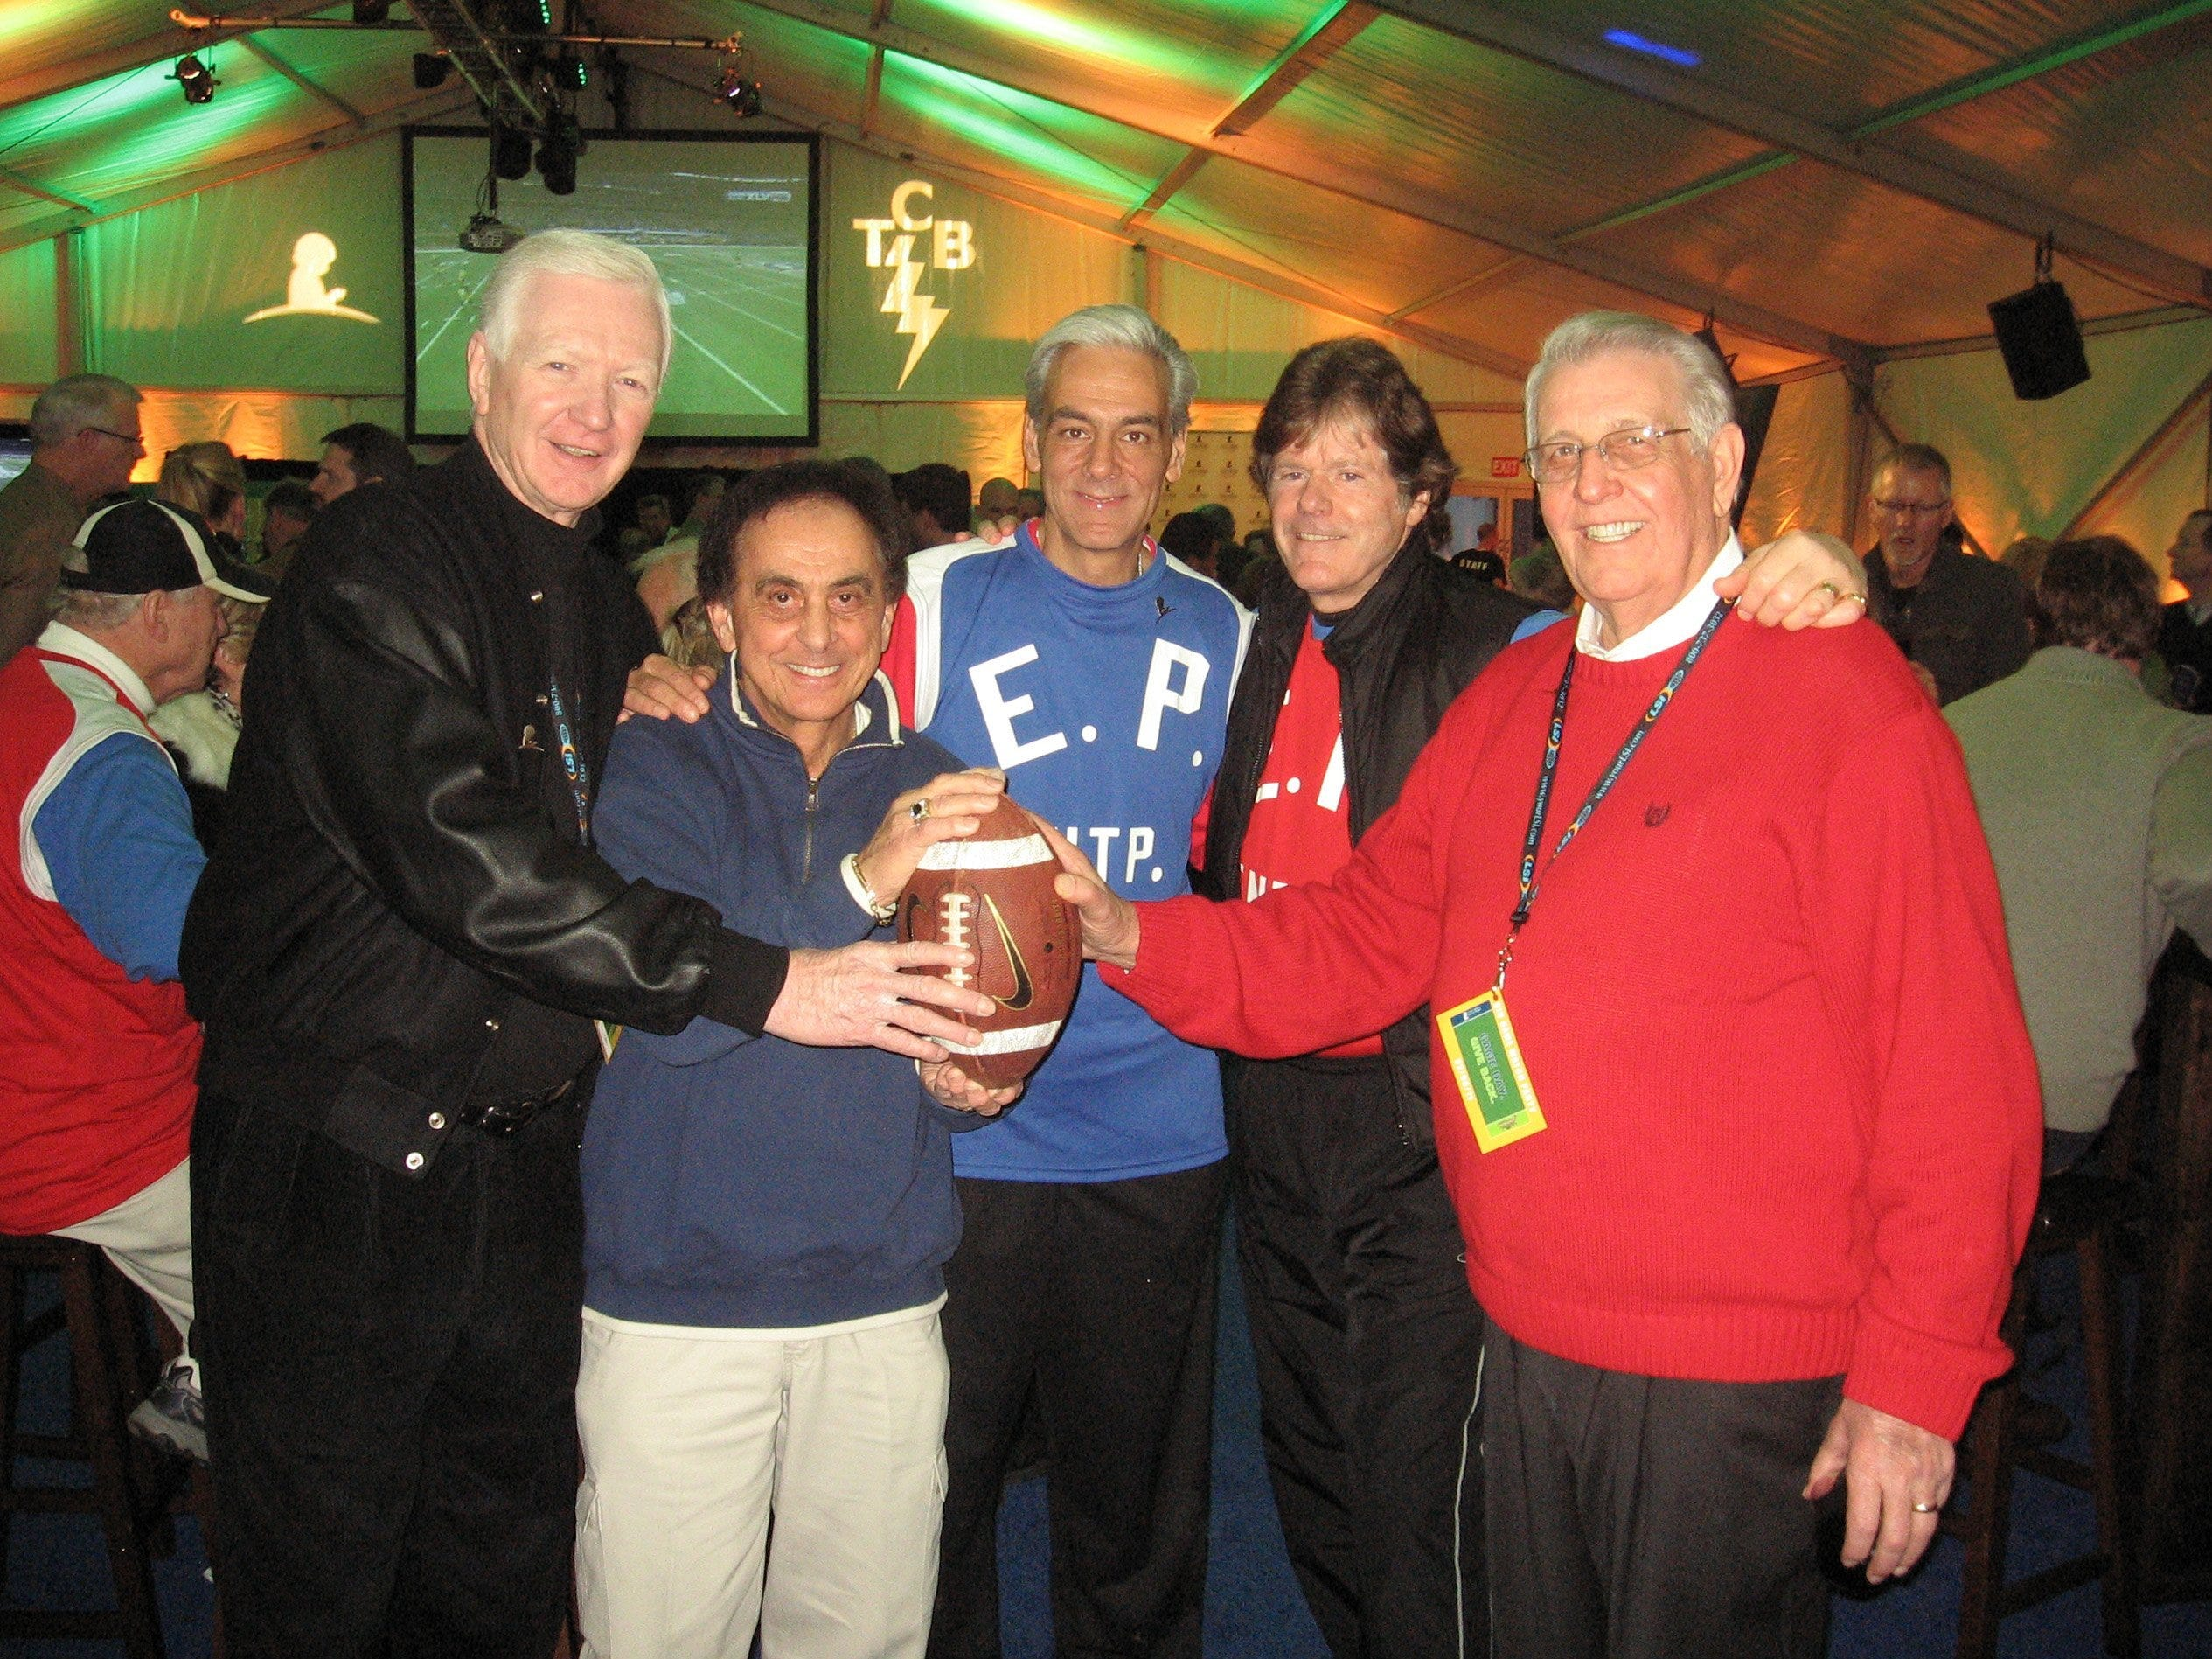 """Feb. 6, 2011 - Former Shelby County Mayors Jim Rout, left, and Bill Morris, right, chaired """"Game Day. Give Back. at Graceland"""" on Super Bowl Sunday. Also taking part were, from left, George Klein, ALSAC chief executive officer Rick Shadyac Jr. and Jerry Schilling."""